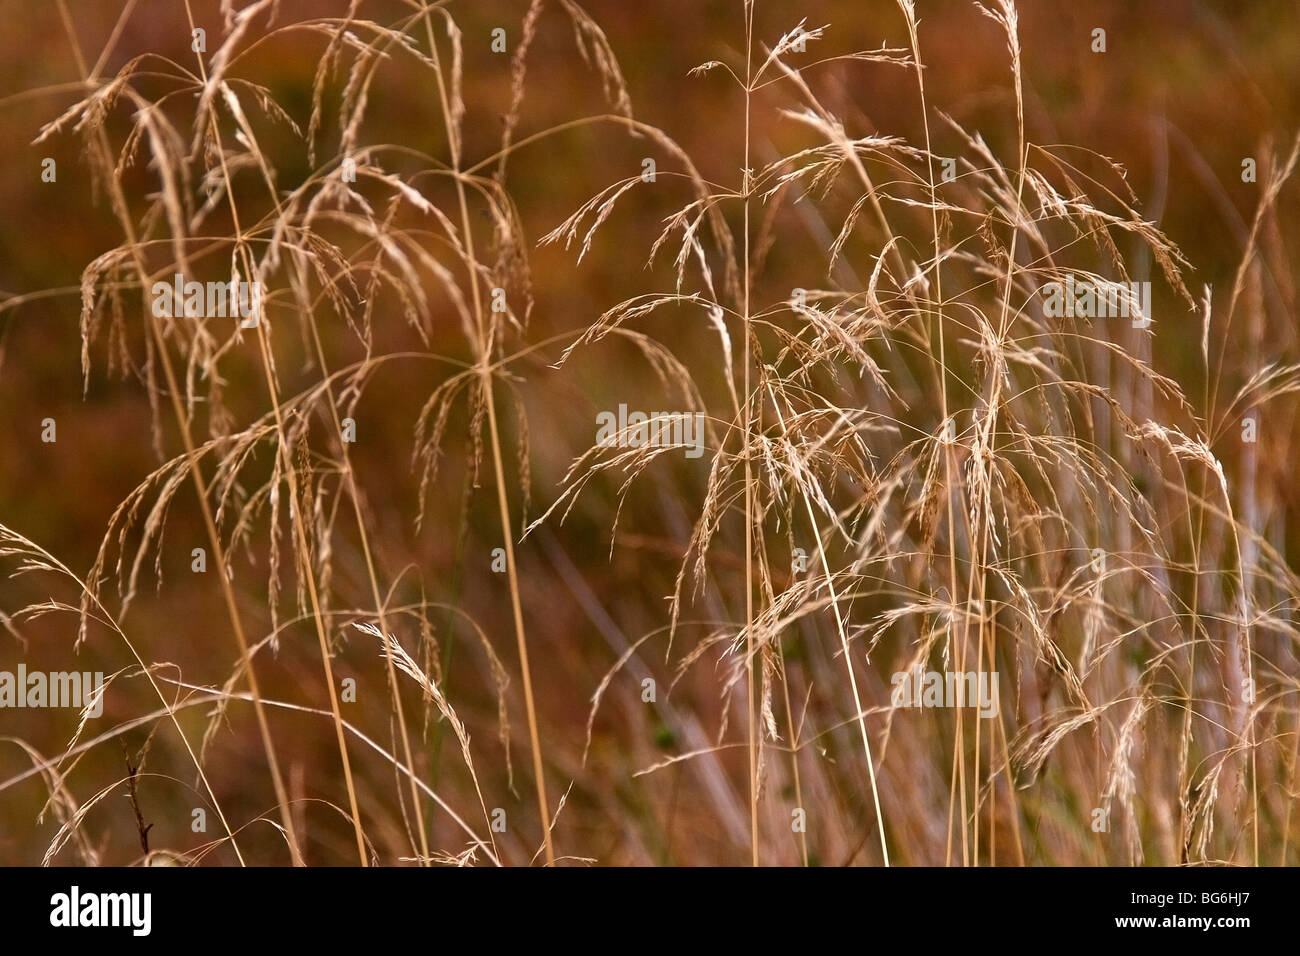 Dry grass - Stock Image